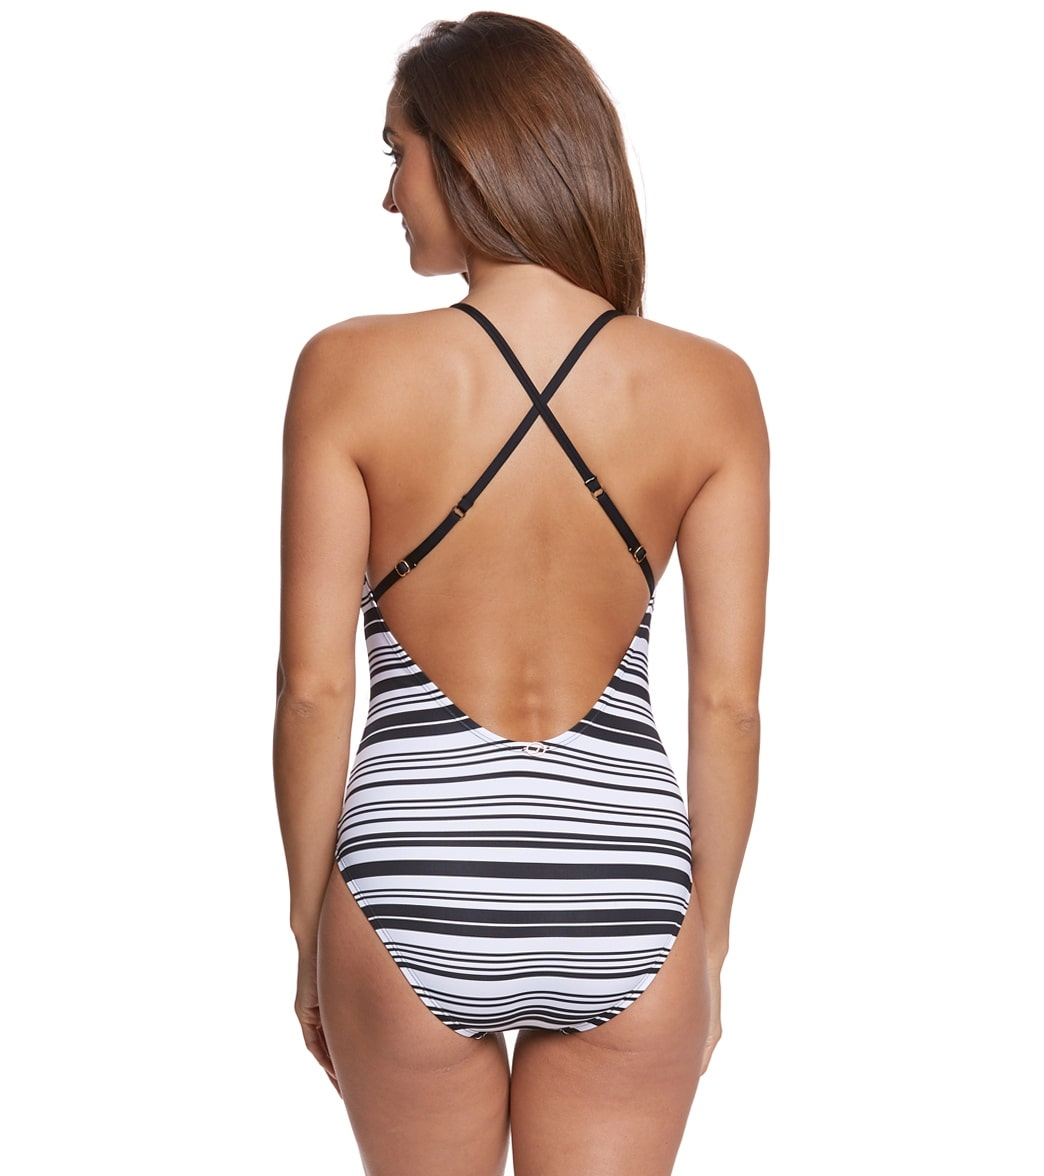 588d0bdcfdfbc Jantzen Floral Stripe Strappy Back One Piece Swimsuit at SwimOutlet ...